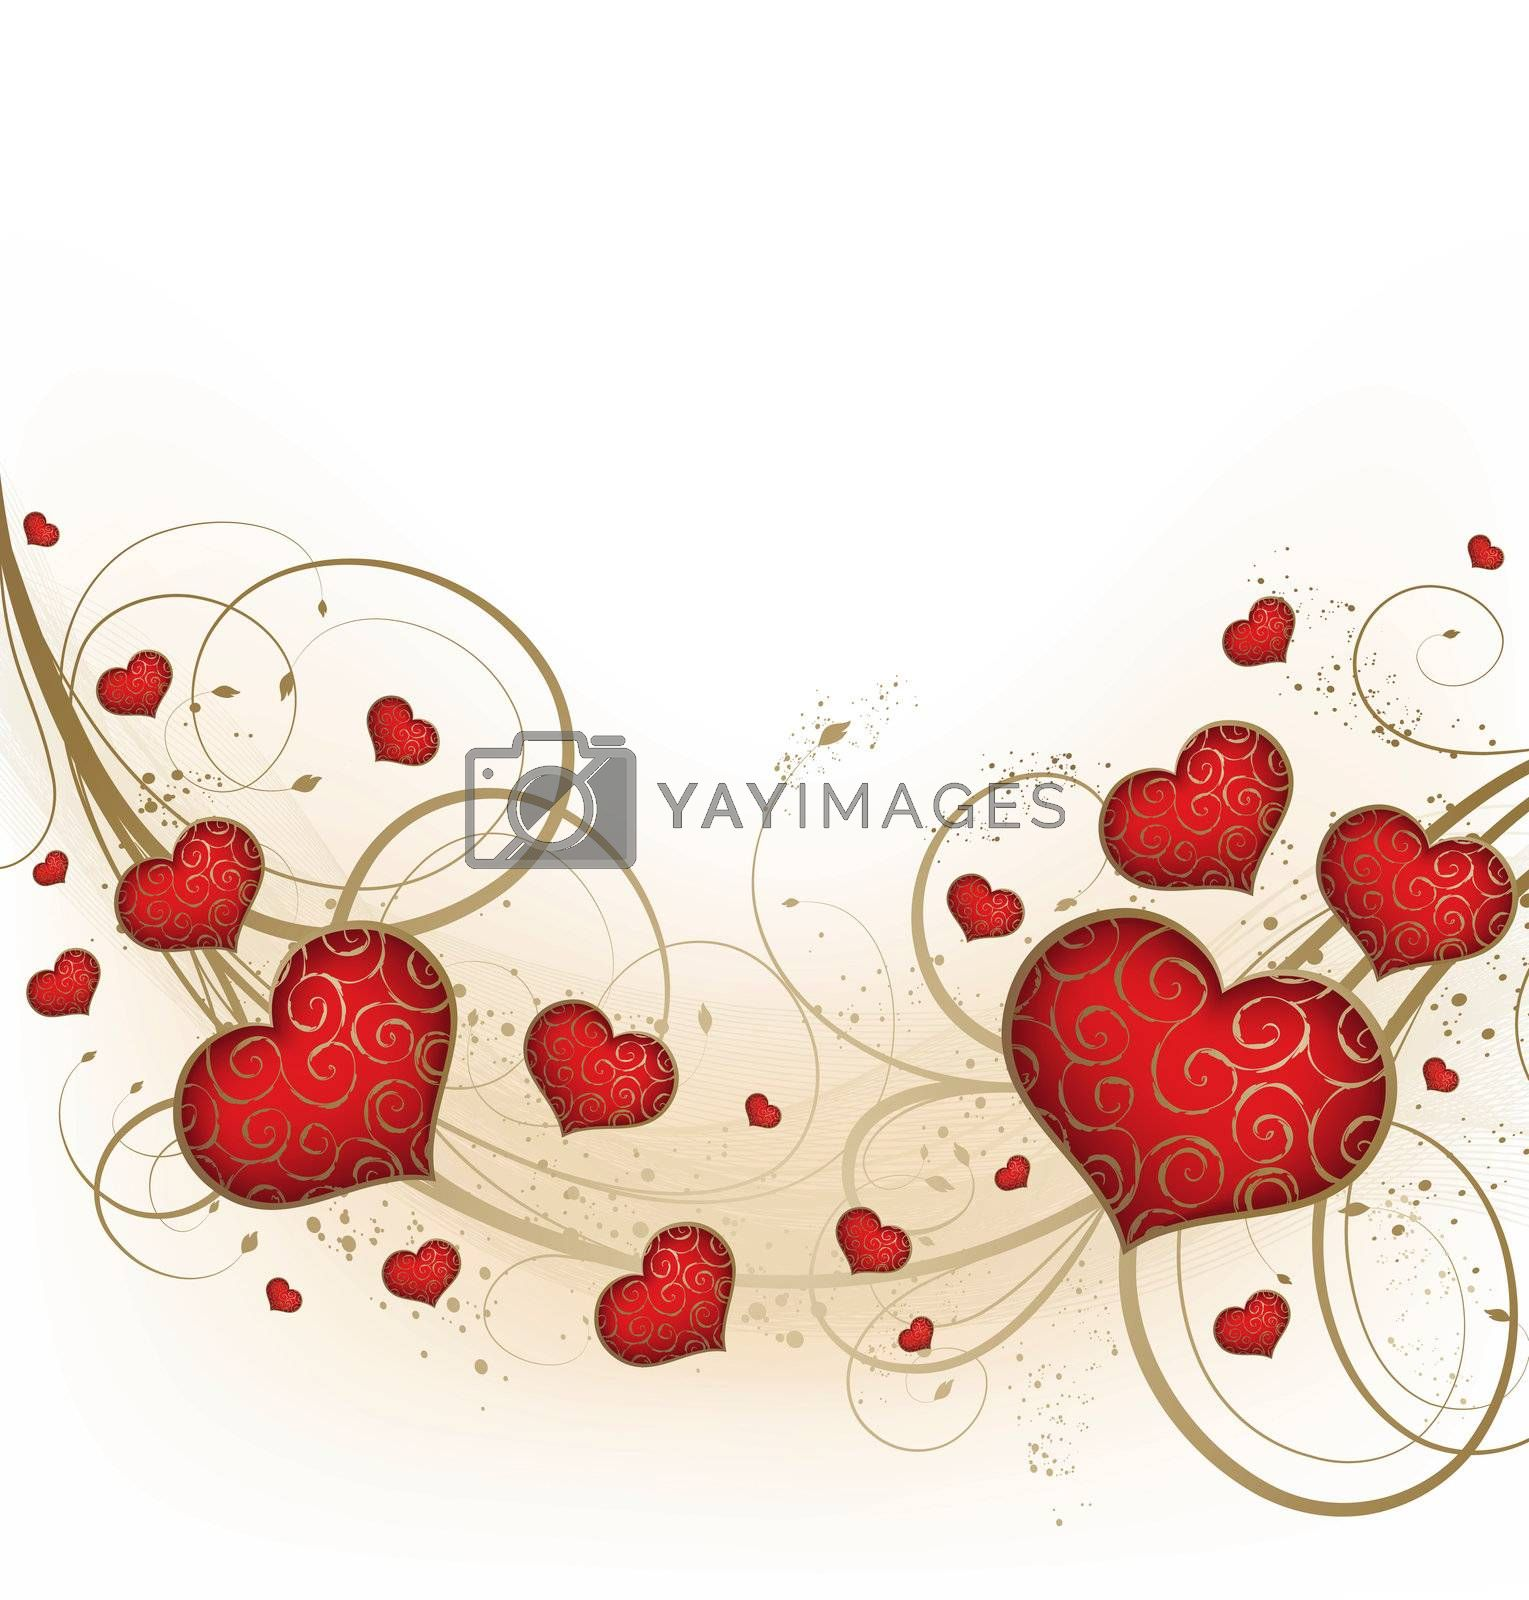 Valentines background with hearts and golden ornate